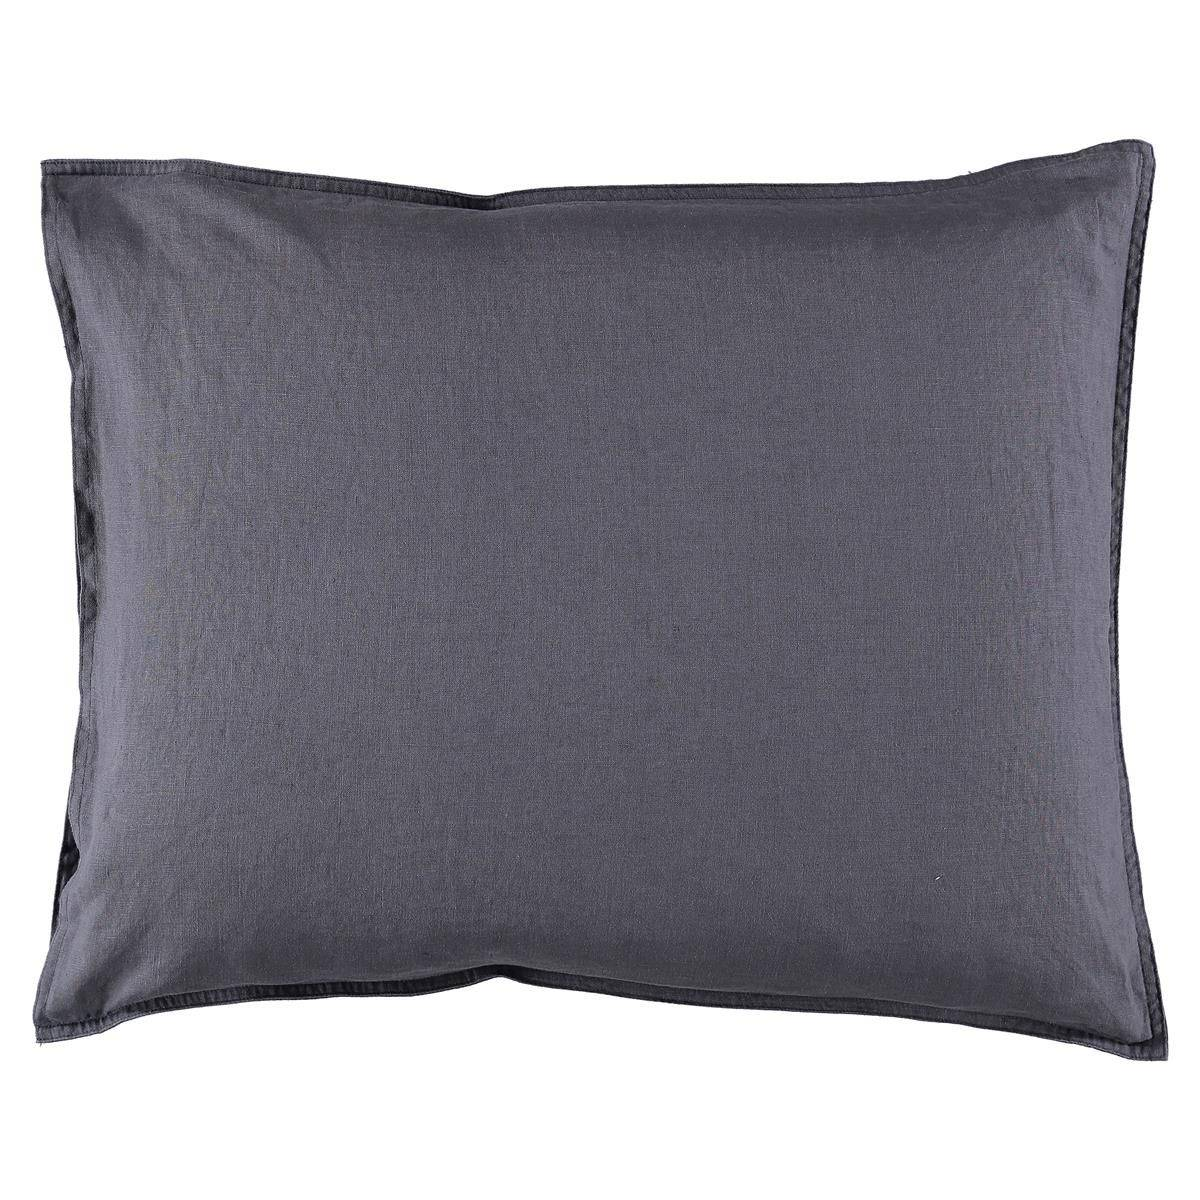 Gripsholm Washed Linen Pillowcase 50x60 cm, Ombre Blue